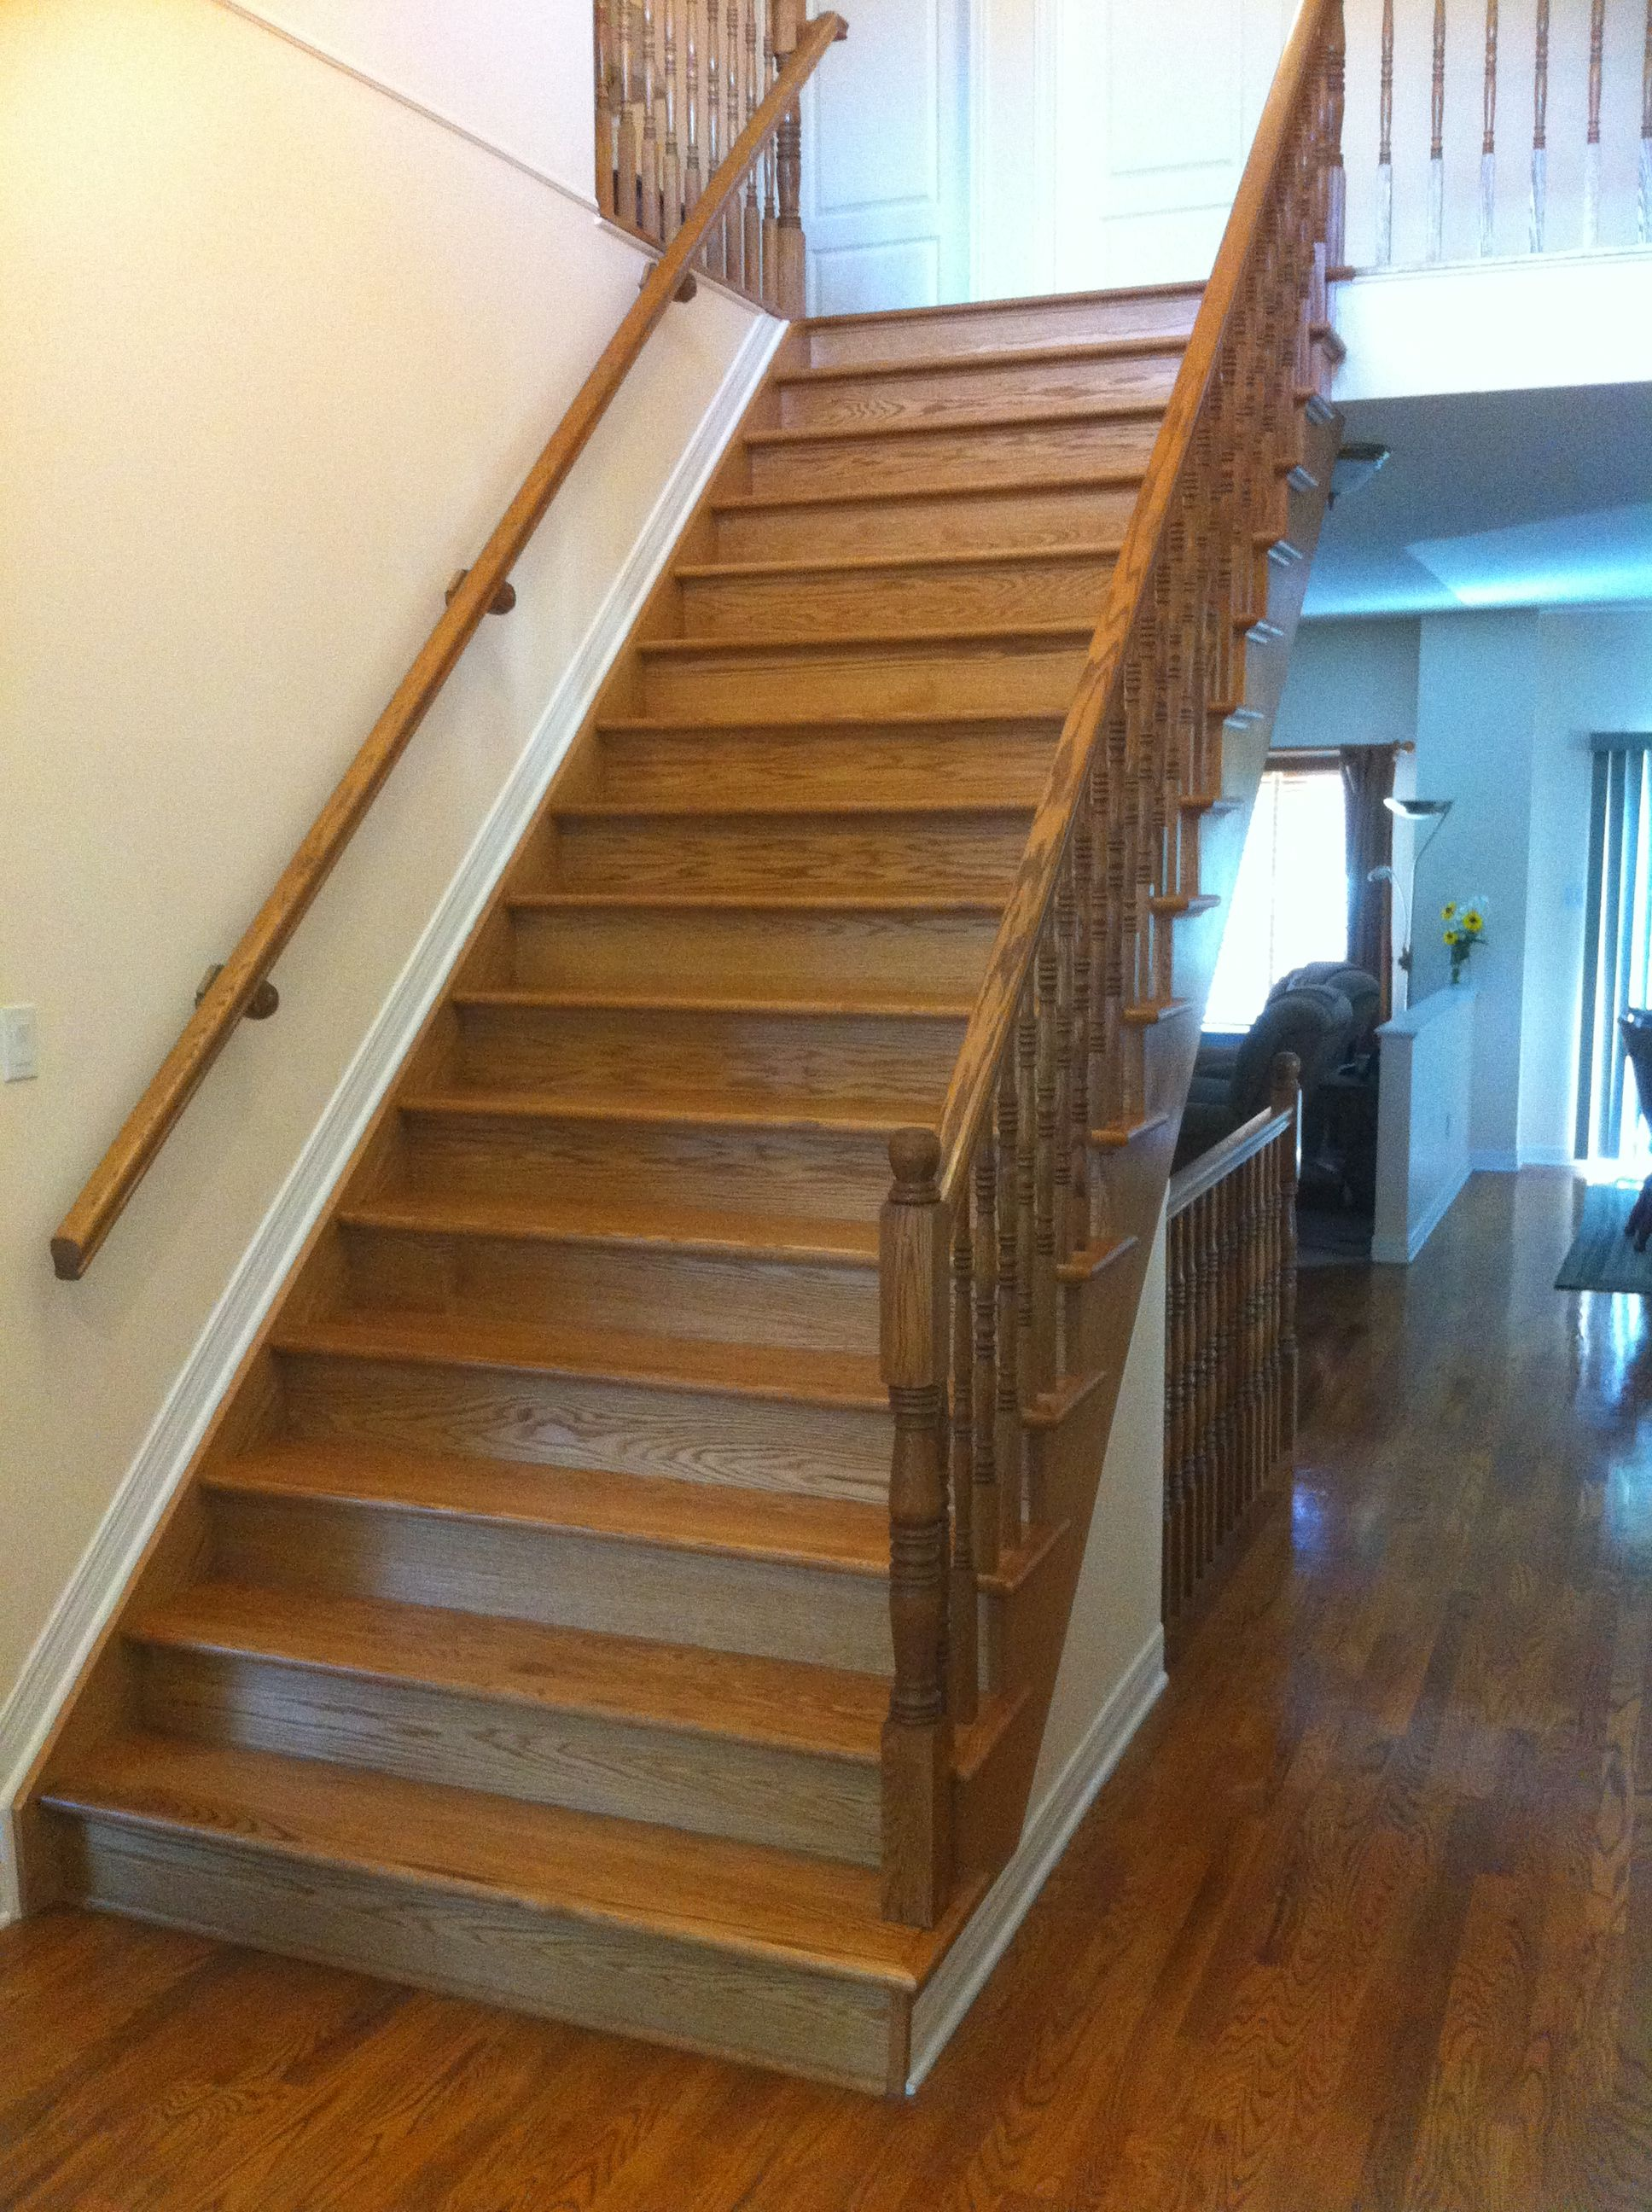 All Wood Stairs With Lights On The Side Wooden Staircase Design